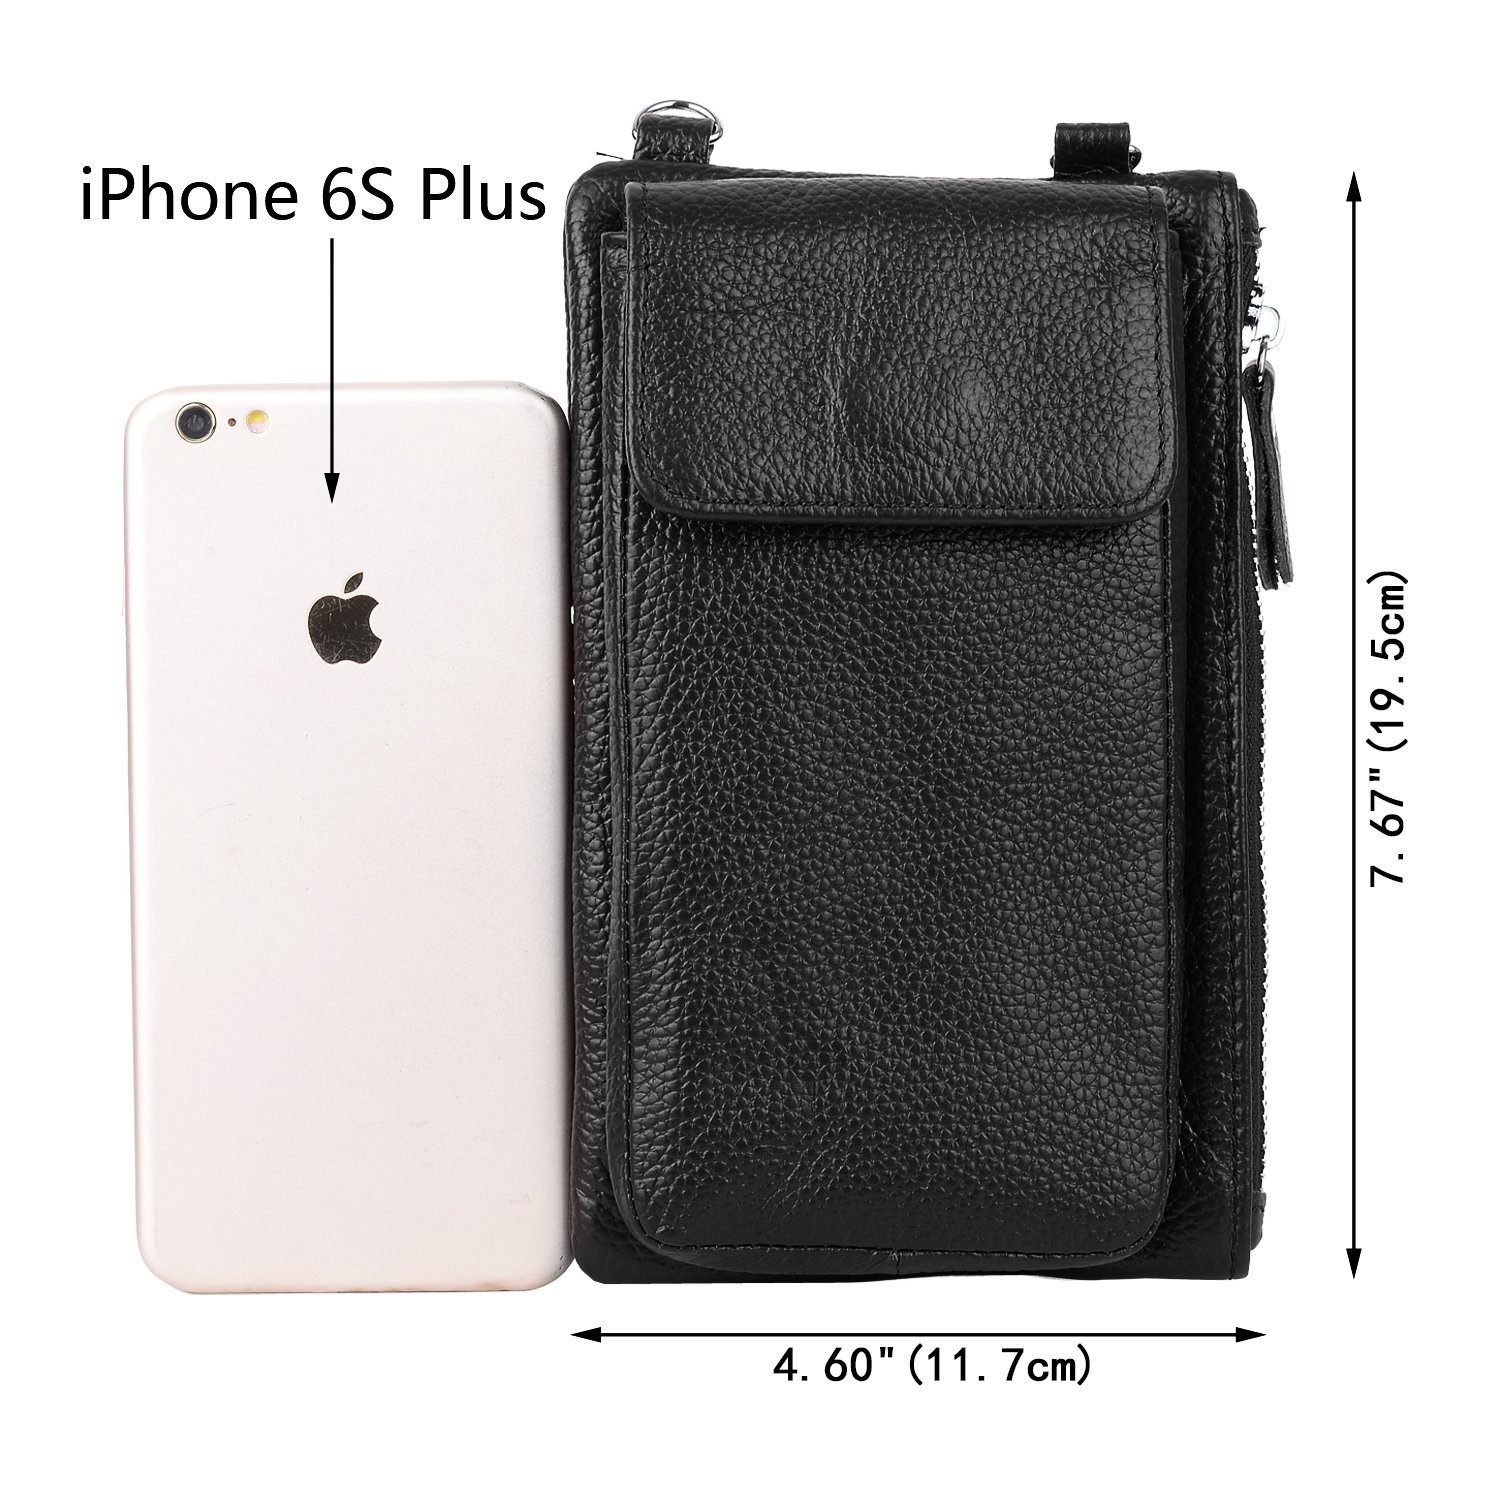 Iphone 7 Plus Bag Bags  Buy Online from Fishpond.co.nz 304463857a